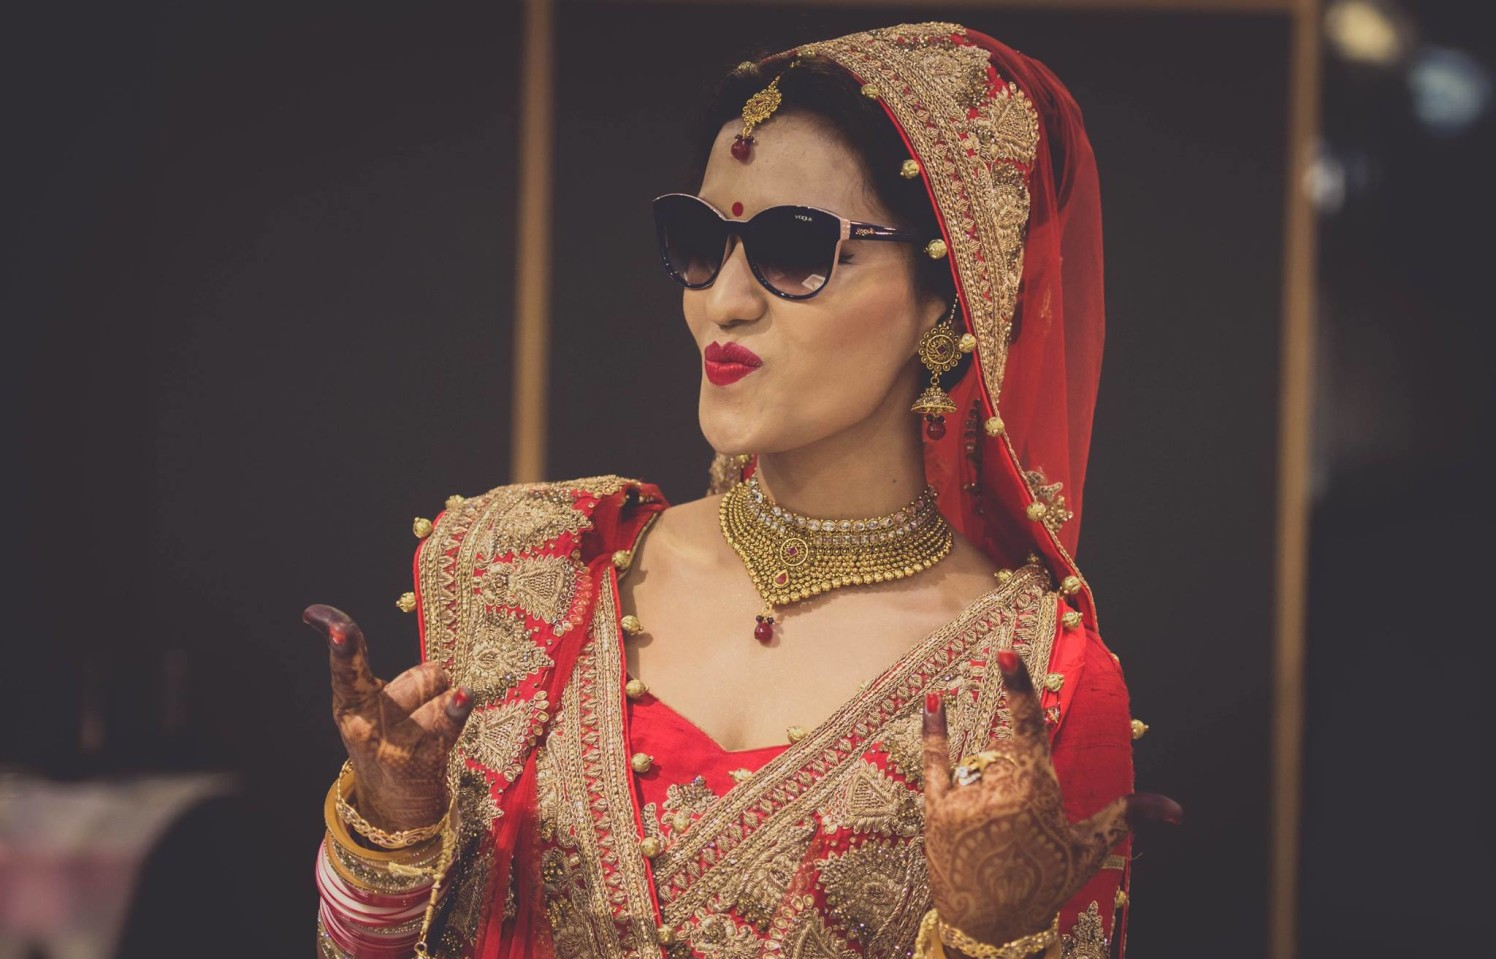 Trendy Bride On her Wedding Day by Dushyantha Kumar C Wedding-photography | Weddings Photos & Ideas